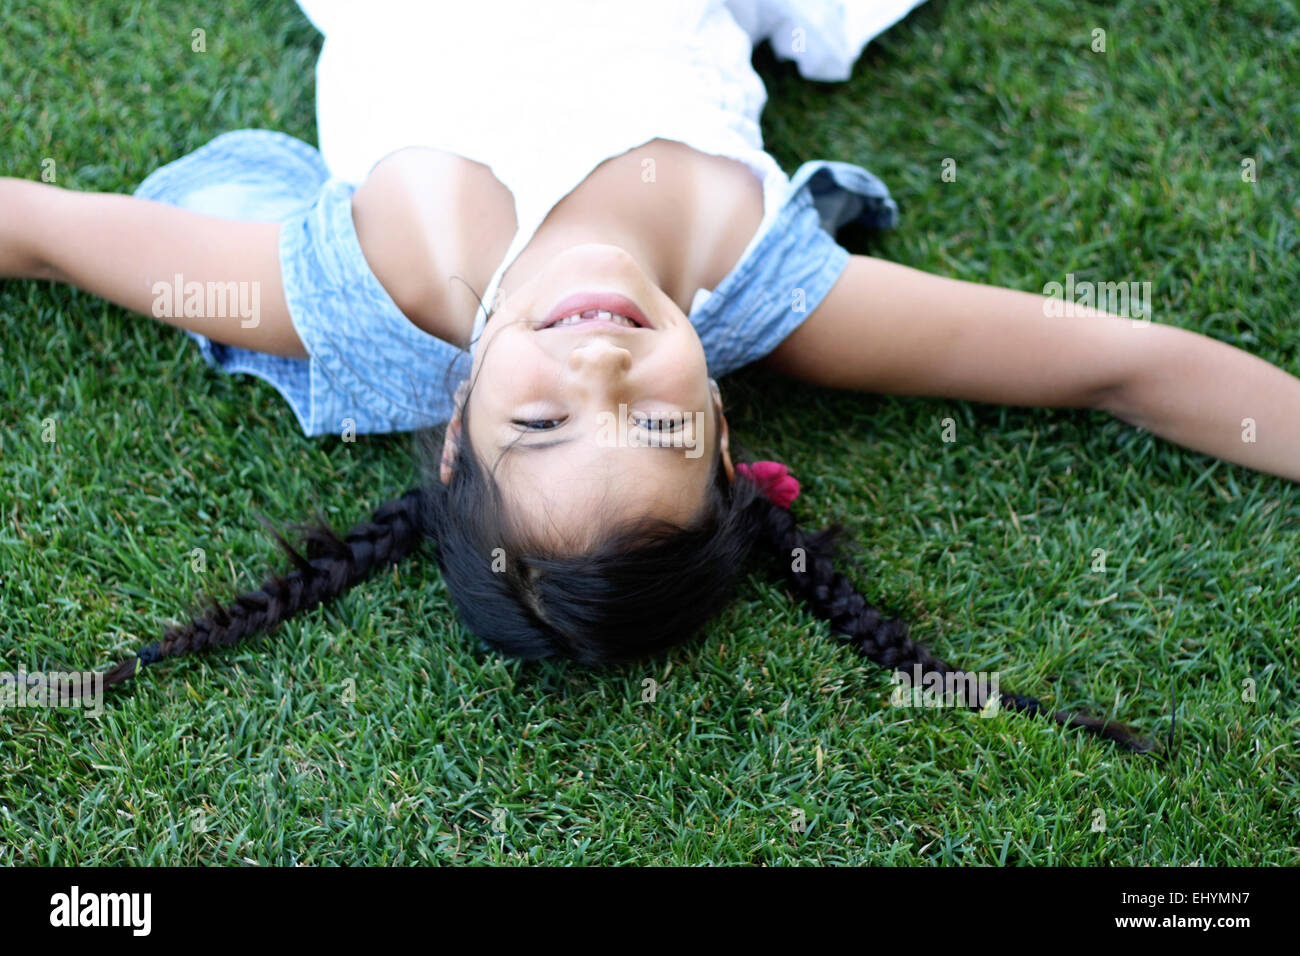 Upside down view of girl lying on grass - Stock Image